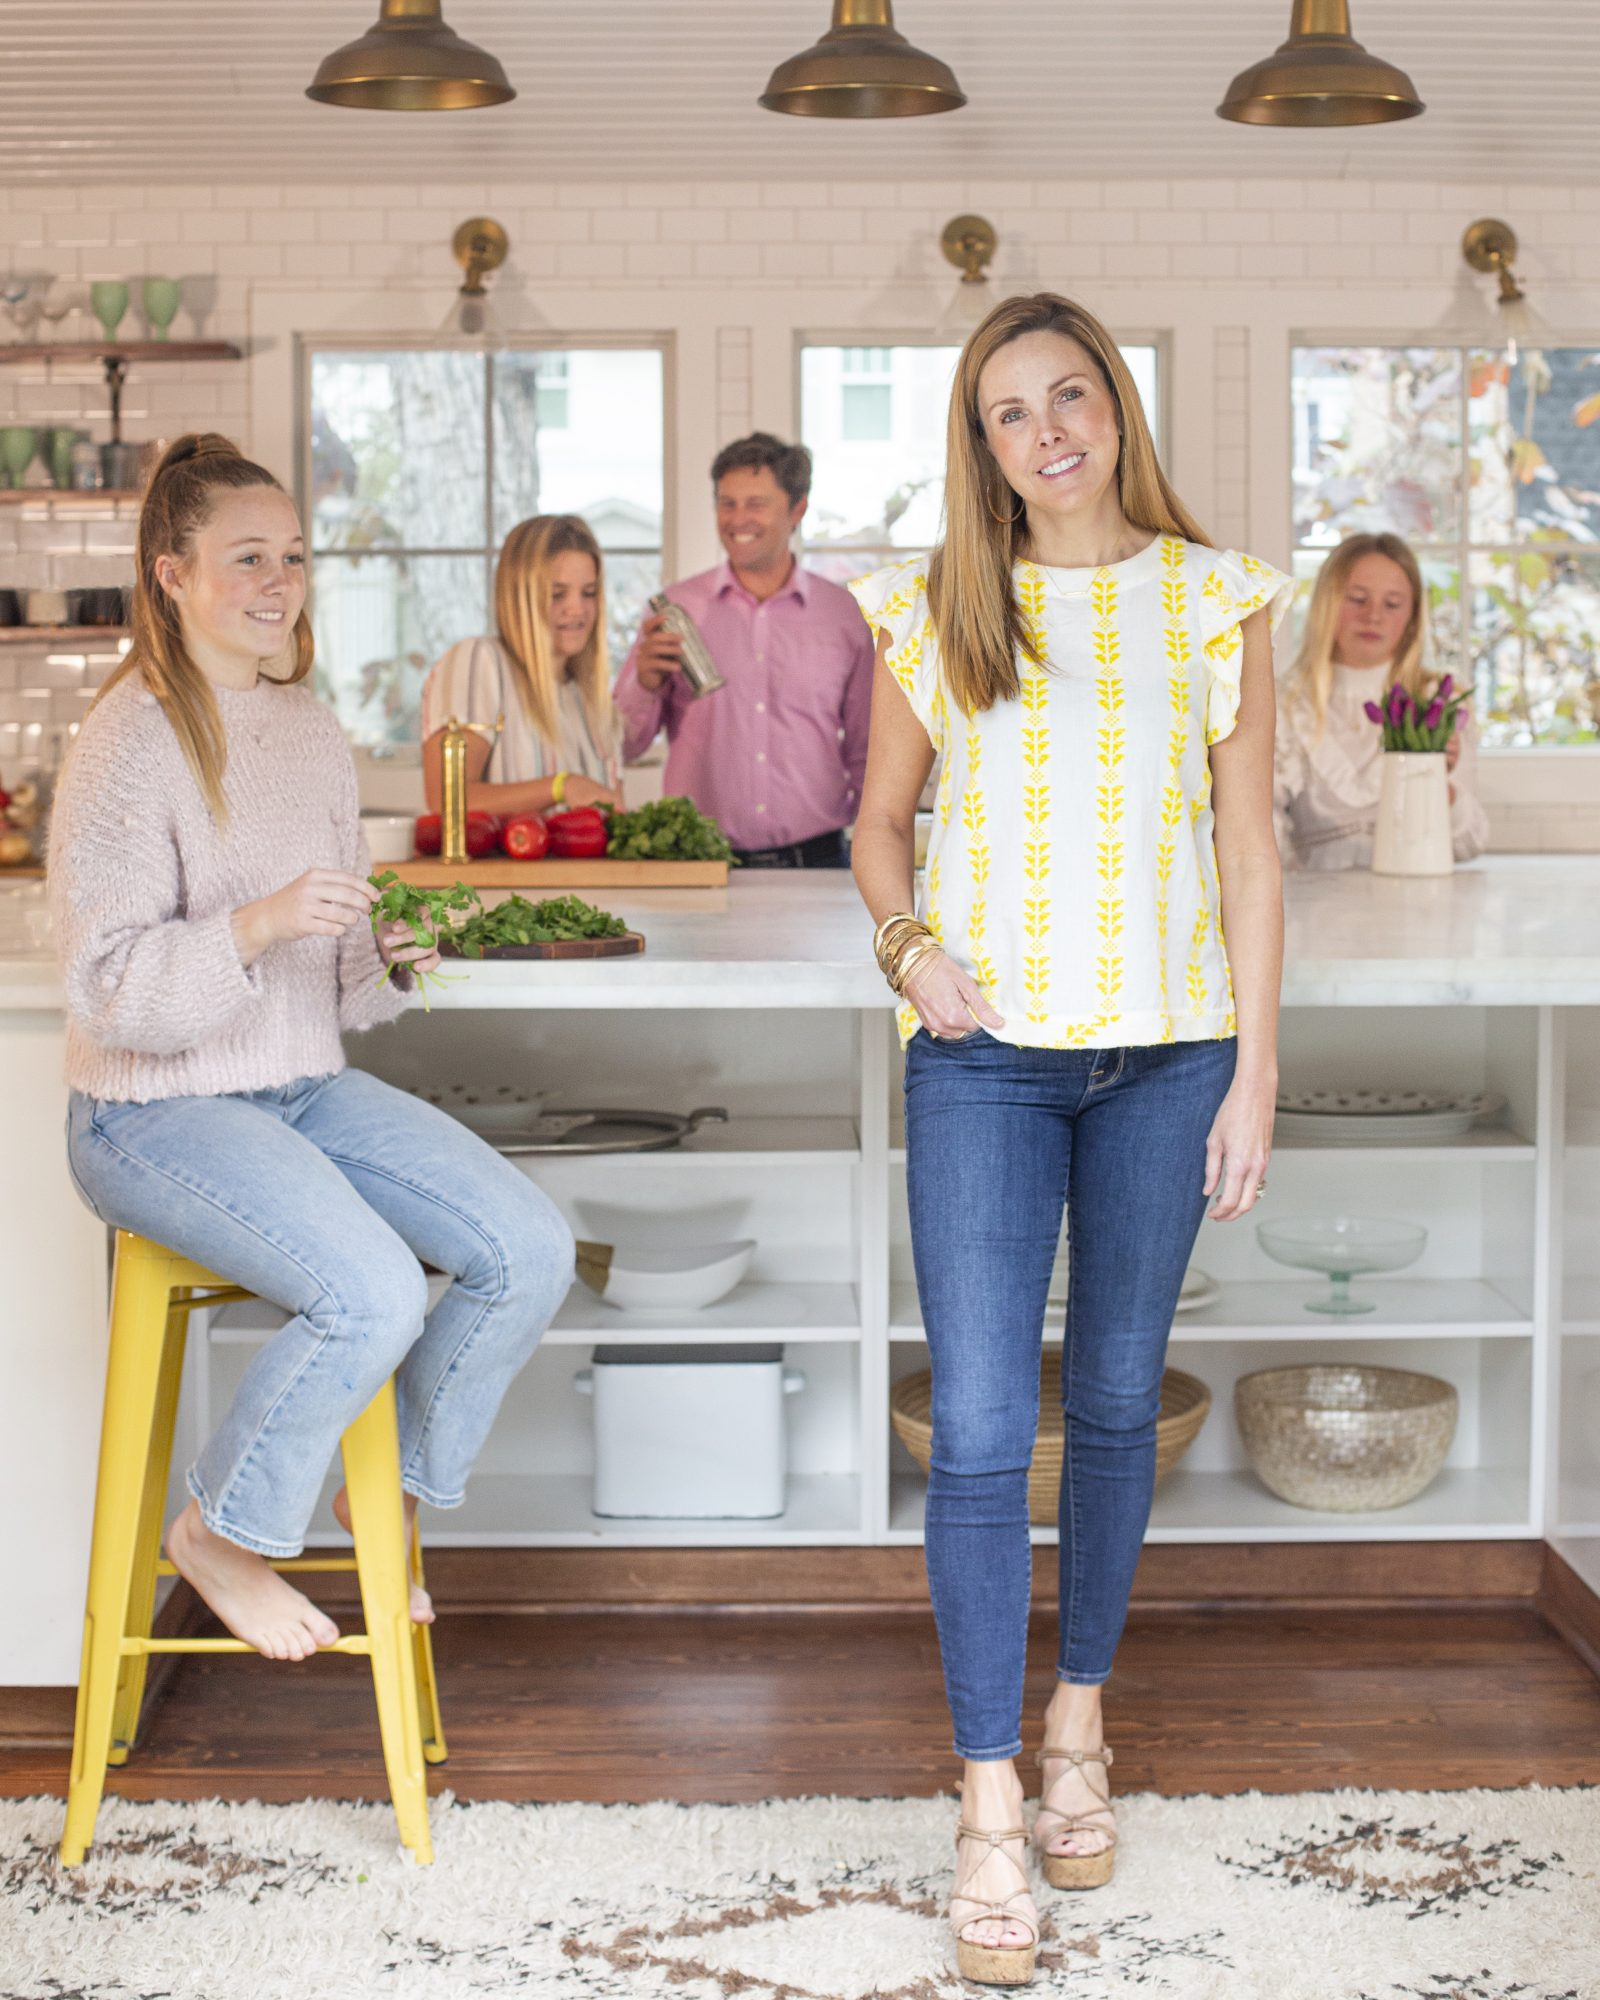 portrait of carrie morey in kitchen with family